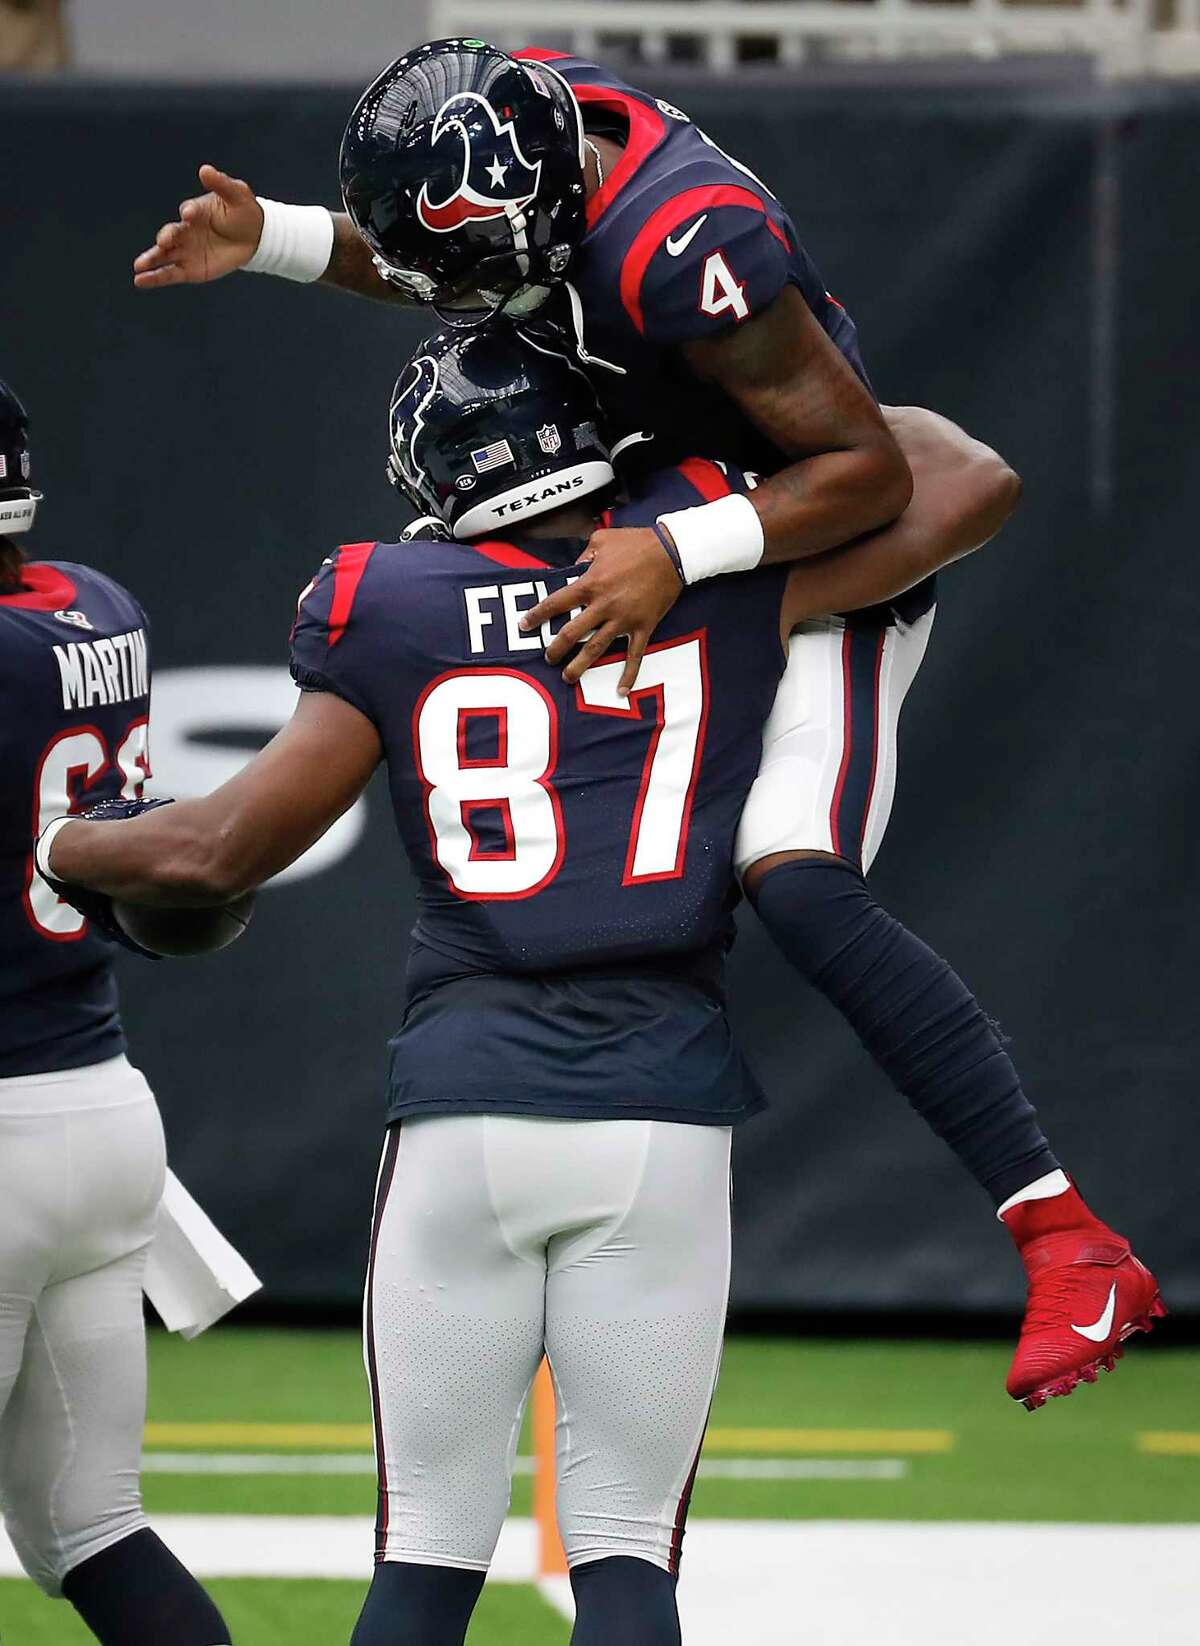 Houston Texans quarterback Deshaun Watson (4) leaps into the arms of tight end Darren Fells (87) as they celebrate Fells' 44--yard touchdown reception against the Jacksonville Jaguars during the first half of an NFL football game at NRG Stadium on Sunday, Oct. 11, 2020, in Houston.